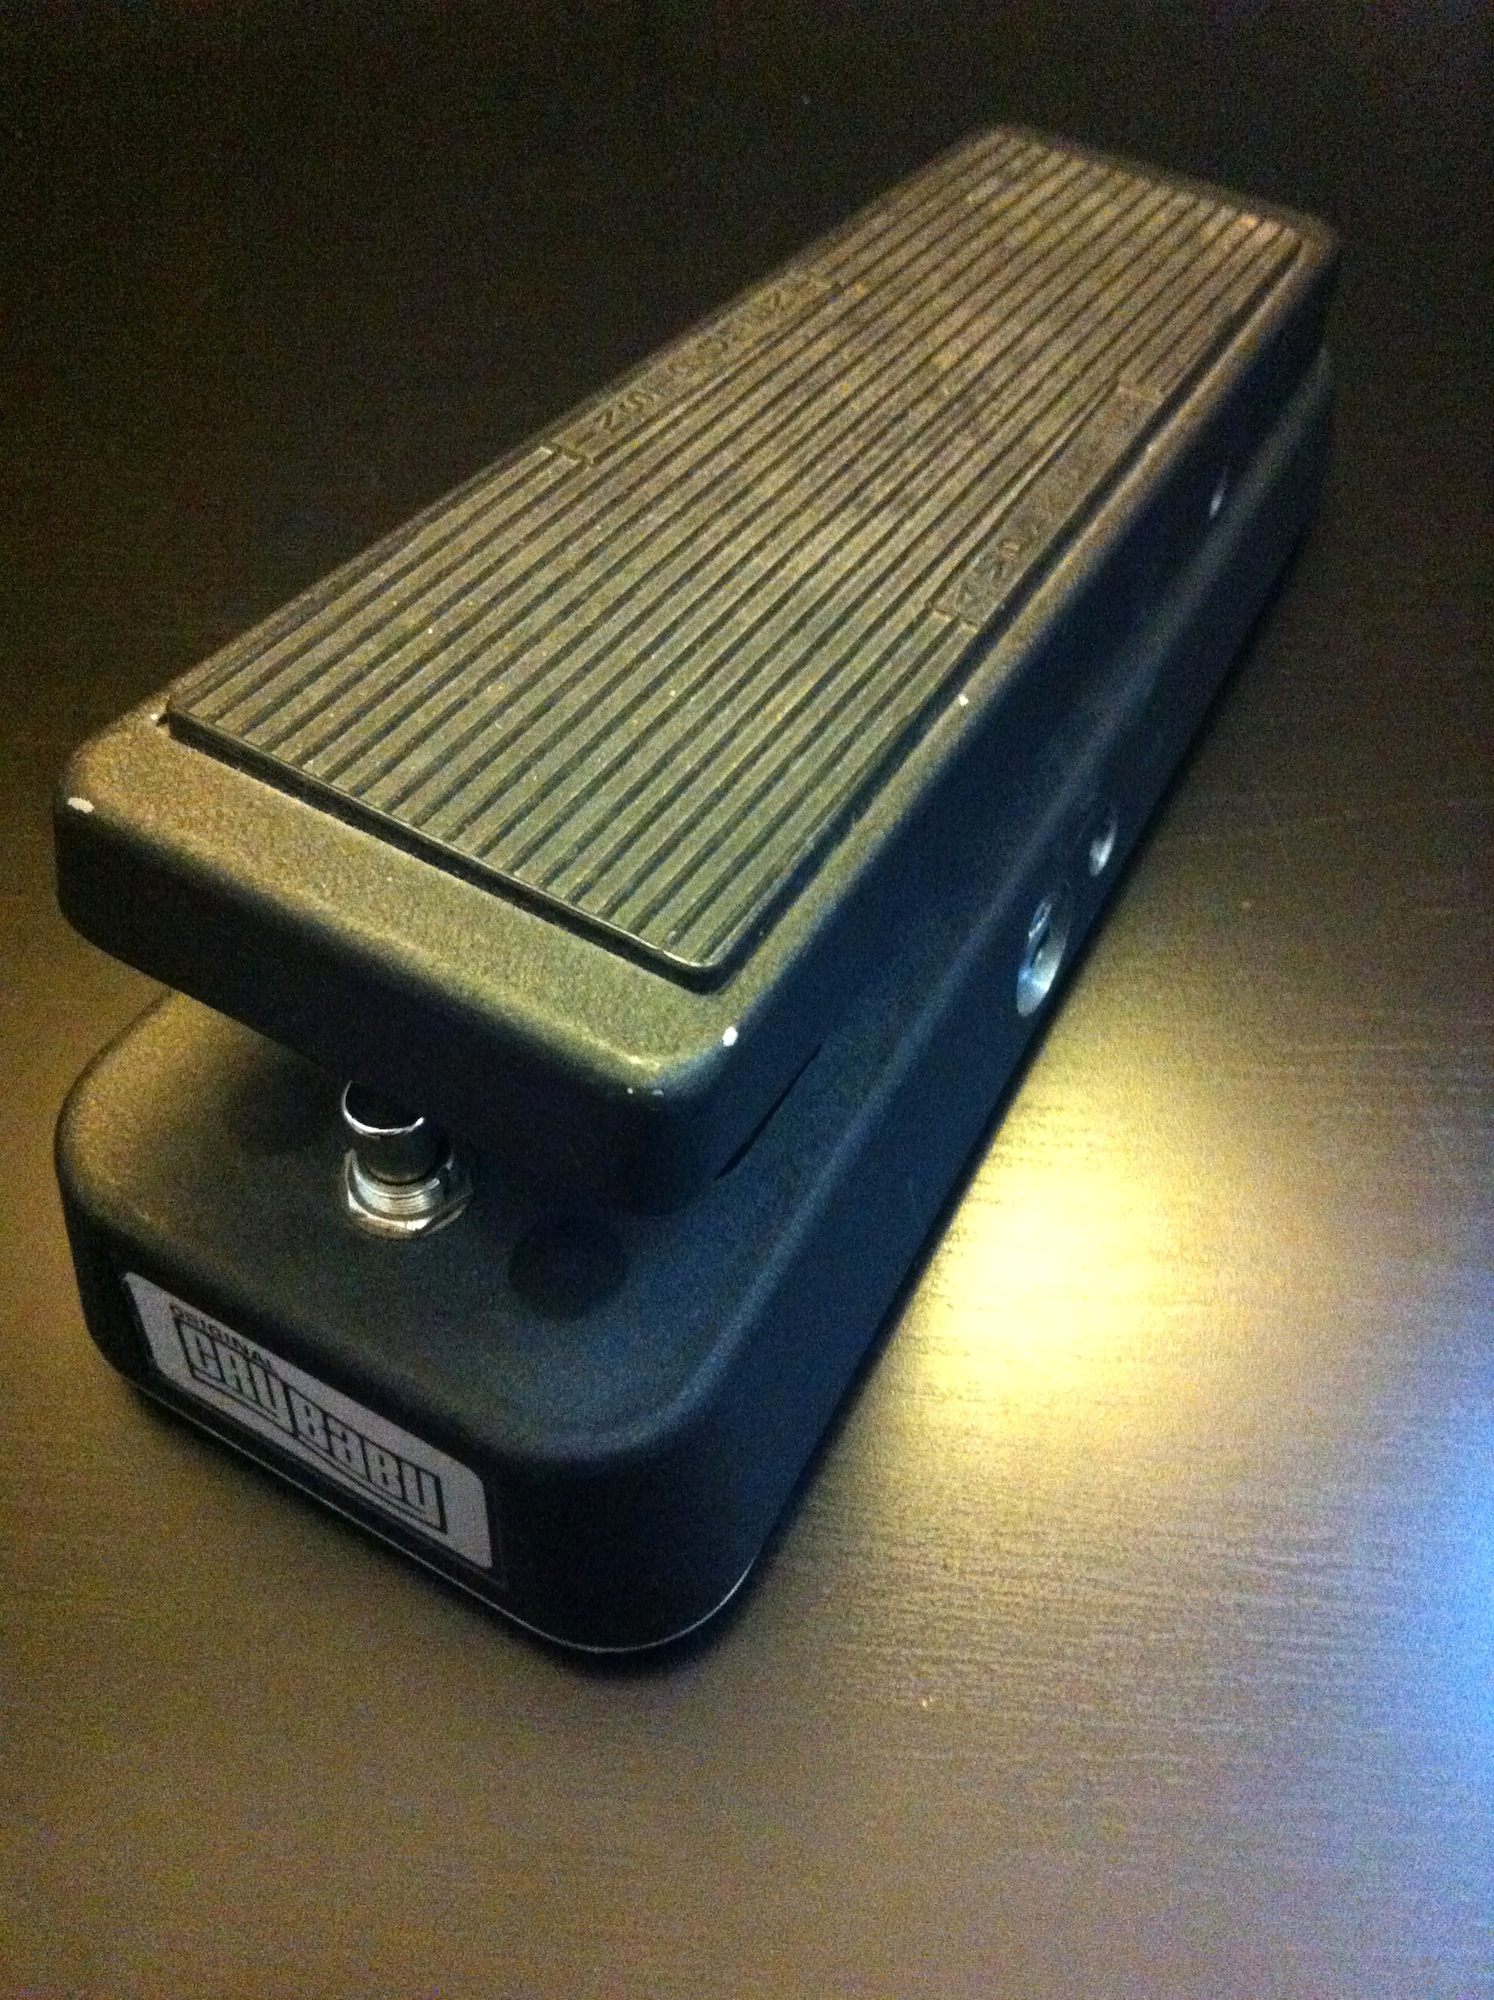 Convert Crybaby Wah Pedal To True Bypass Daniele Turani Wiring Diagram